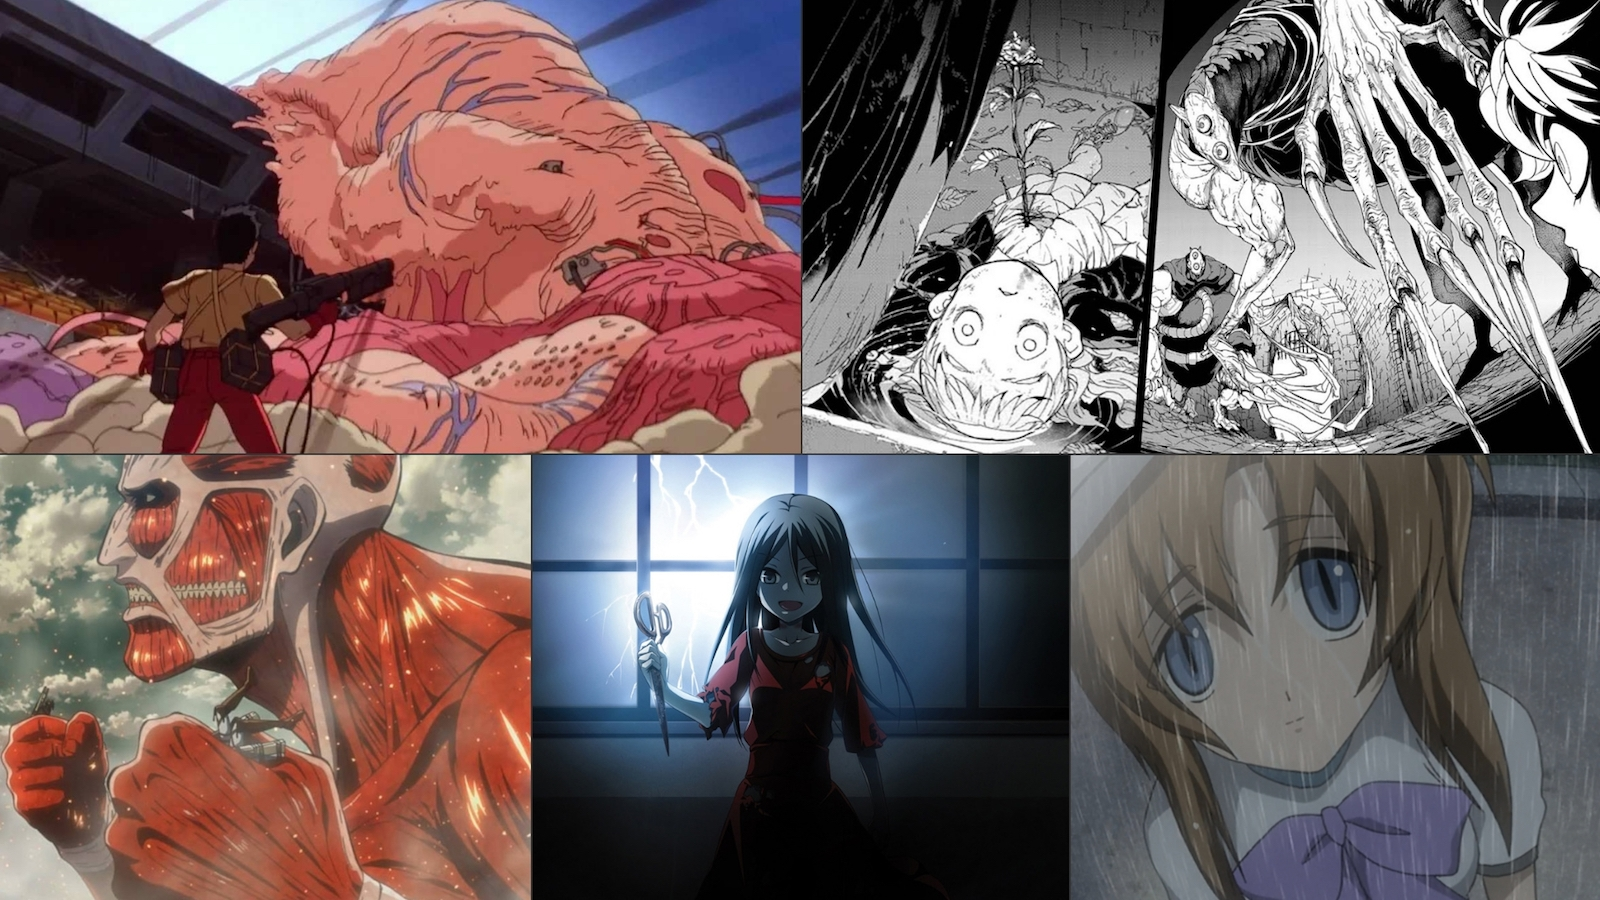 5 Spine Chillingly Scary Japanese Anime Characters Gaijinpot